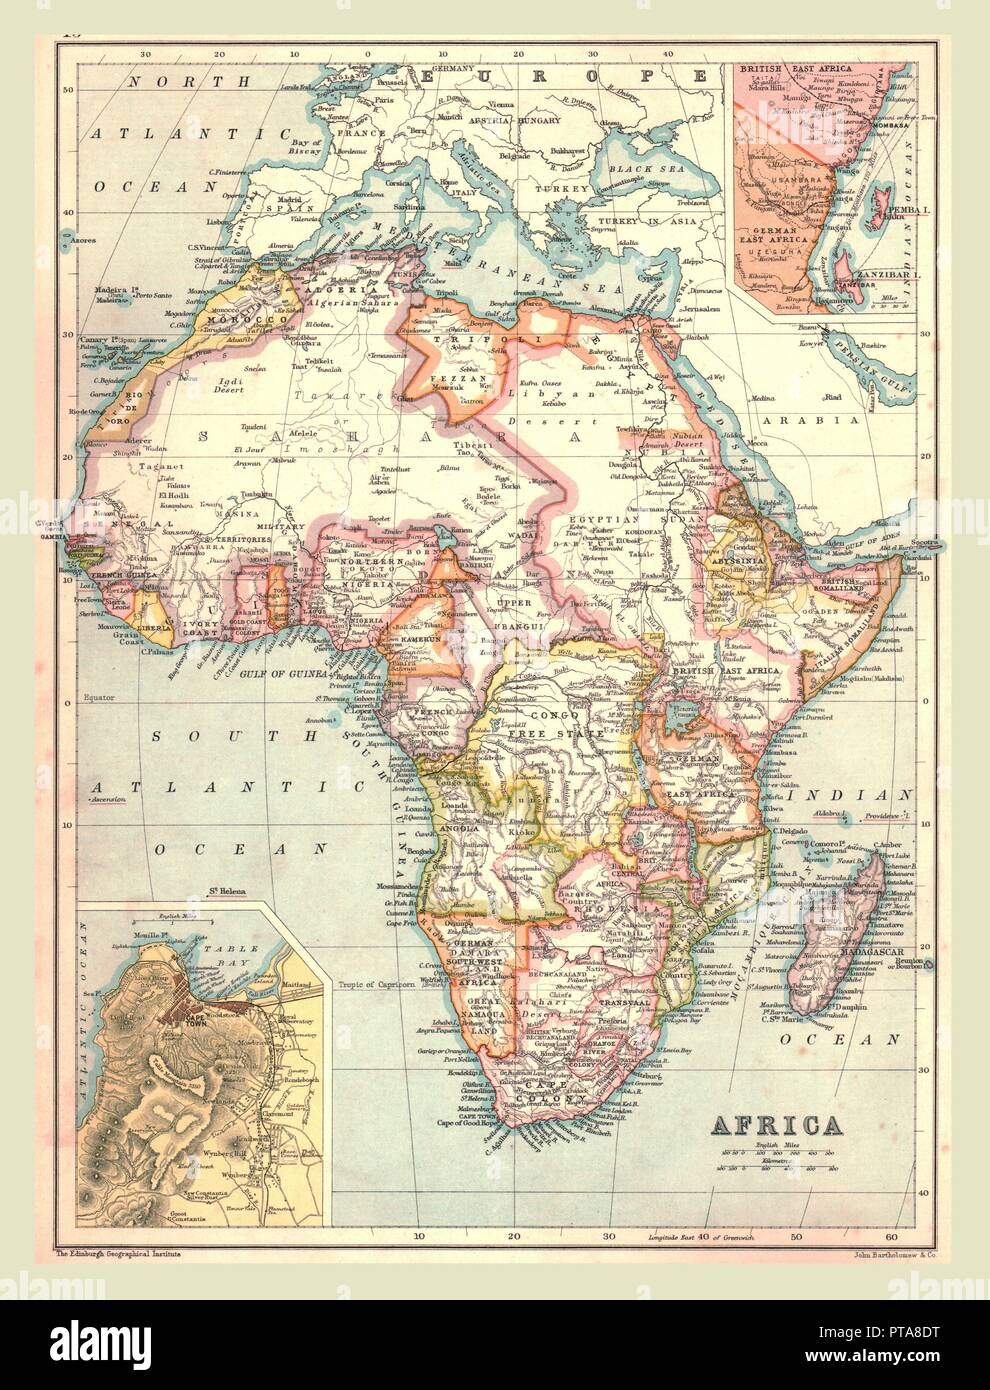 Map of Africa, 1902. Showing colonial possessions including French West Africa and German South West Africa, with insets of Table Bay in South Africa, and British and German East Africa. From The Century Atlas of the World. [John Walker & Co, Ltd., London, 1902] - Stock Image